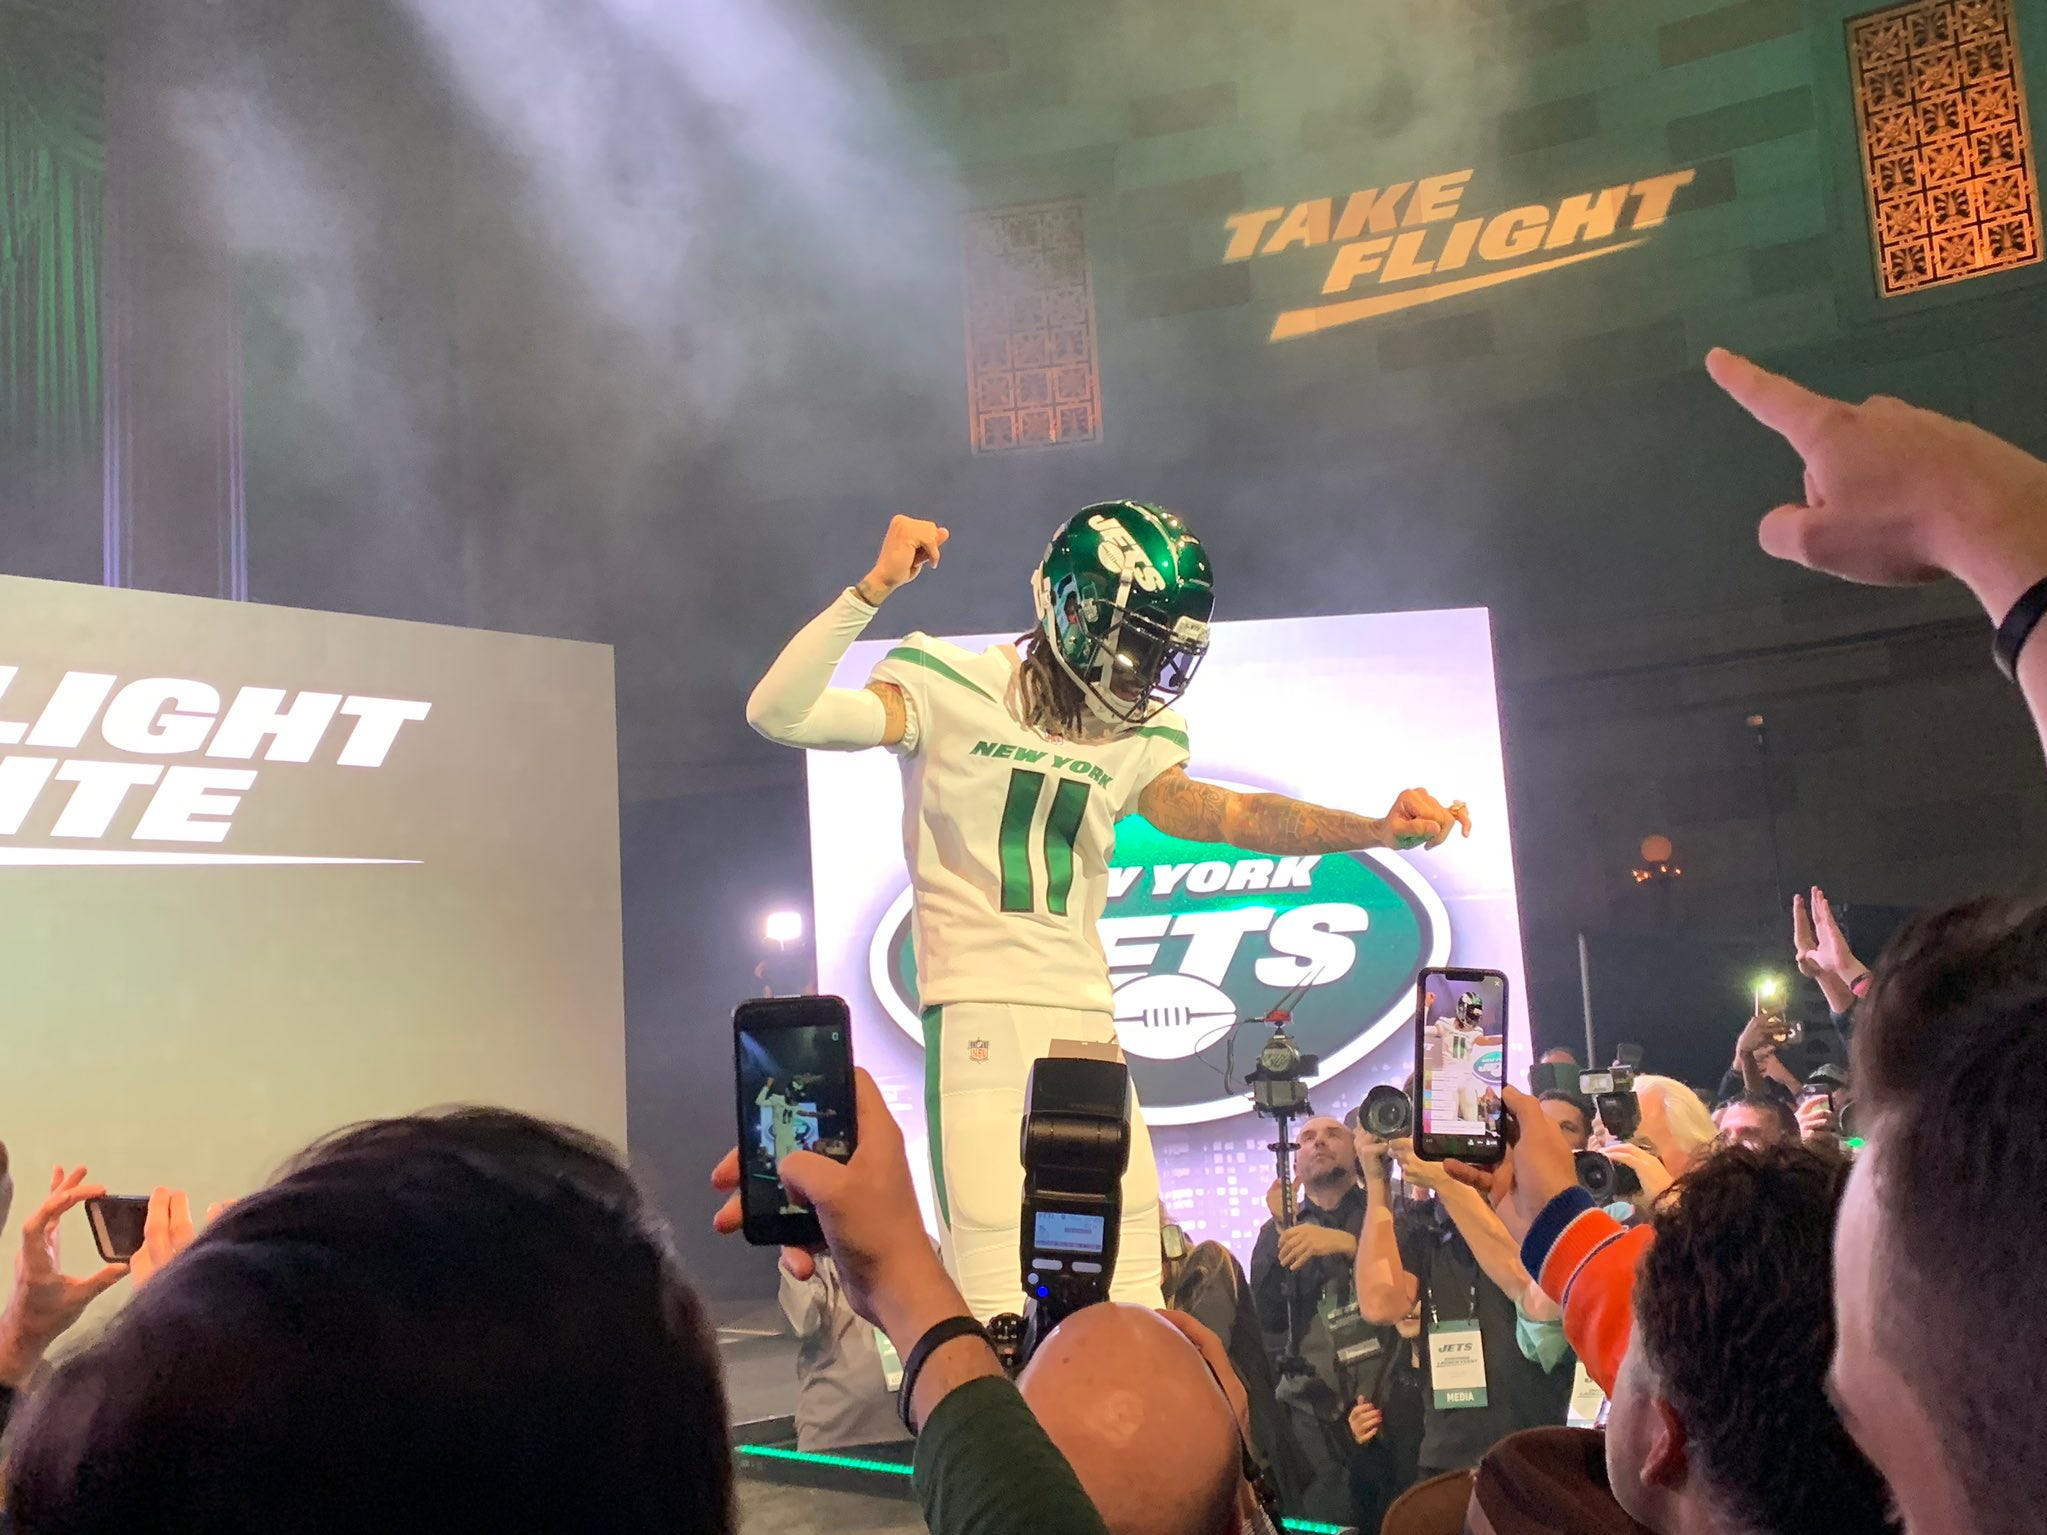 """Robby Anderson in the new road """"spotlight white"""" uniforms as he New York Jets unveiled the team's new uniforms on Thursday, April 4, 2019."""